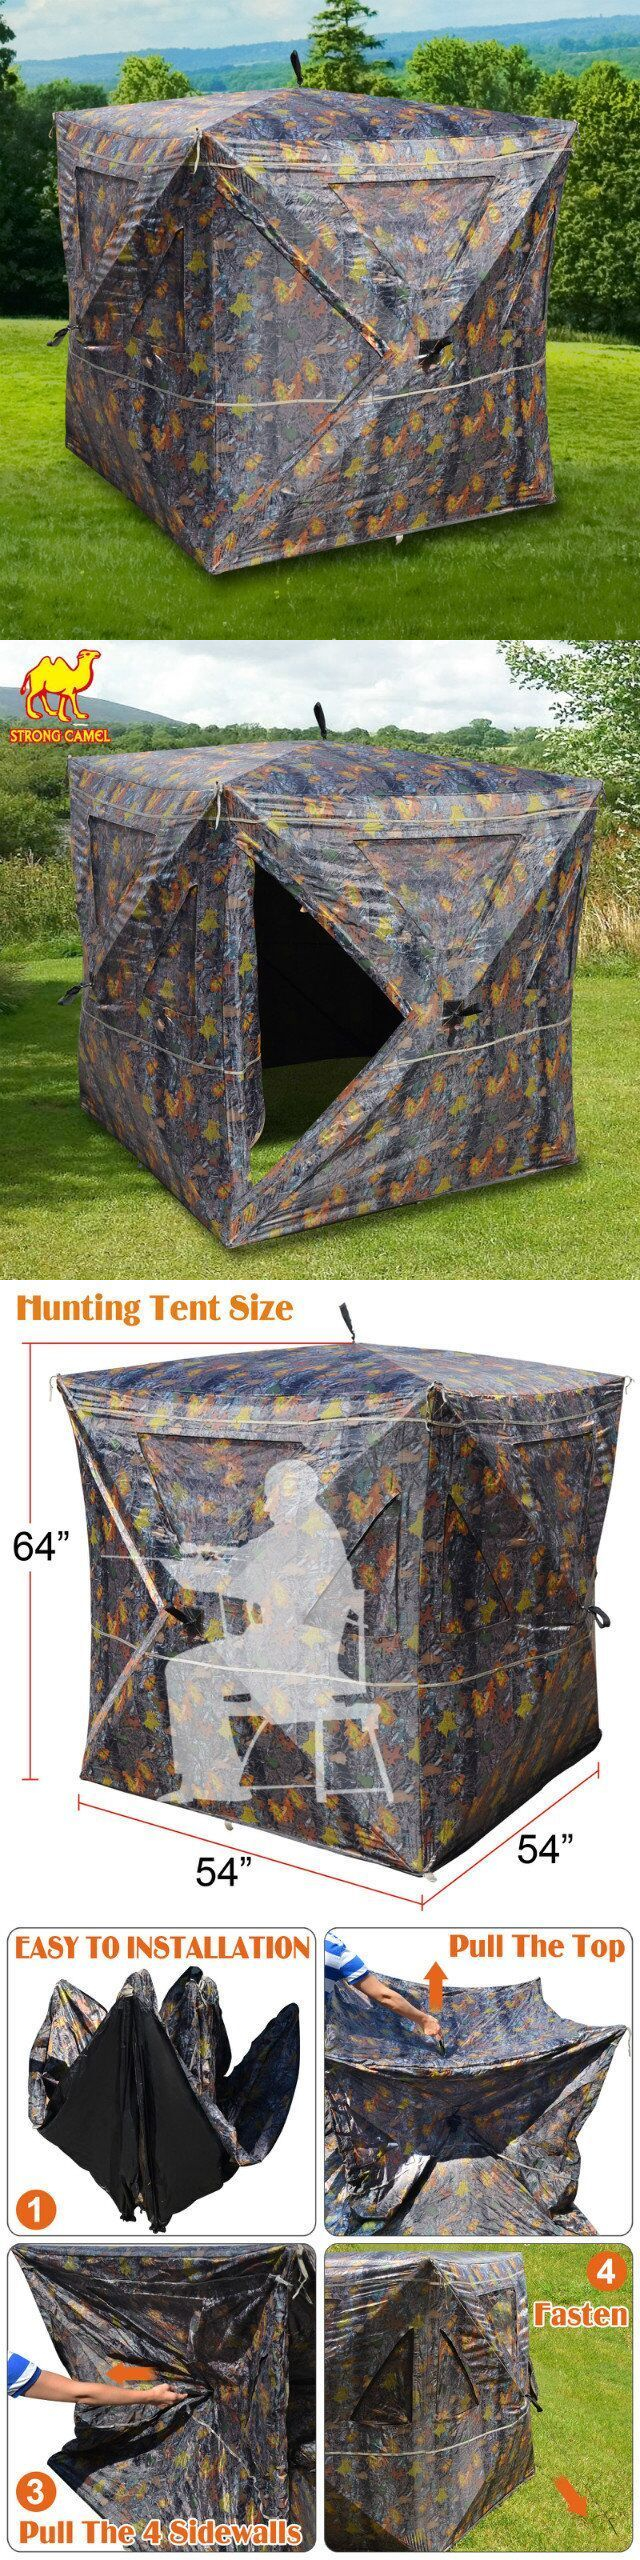 Blinds 177910 New 2-3 Person Camouflage Hunting Blind Ground Deer Archery Outhouse Camo & Blinds 177910: New 2-3 Person Camouflage Hunting Blind Ground Deer ...